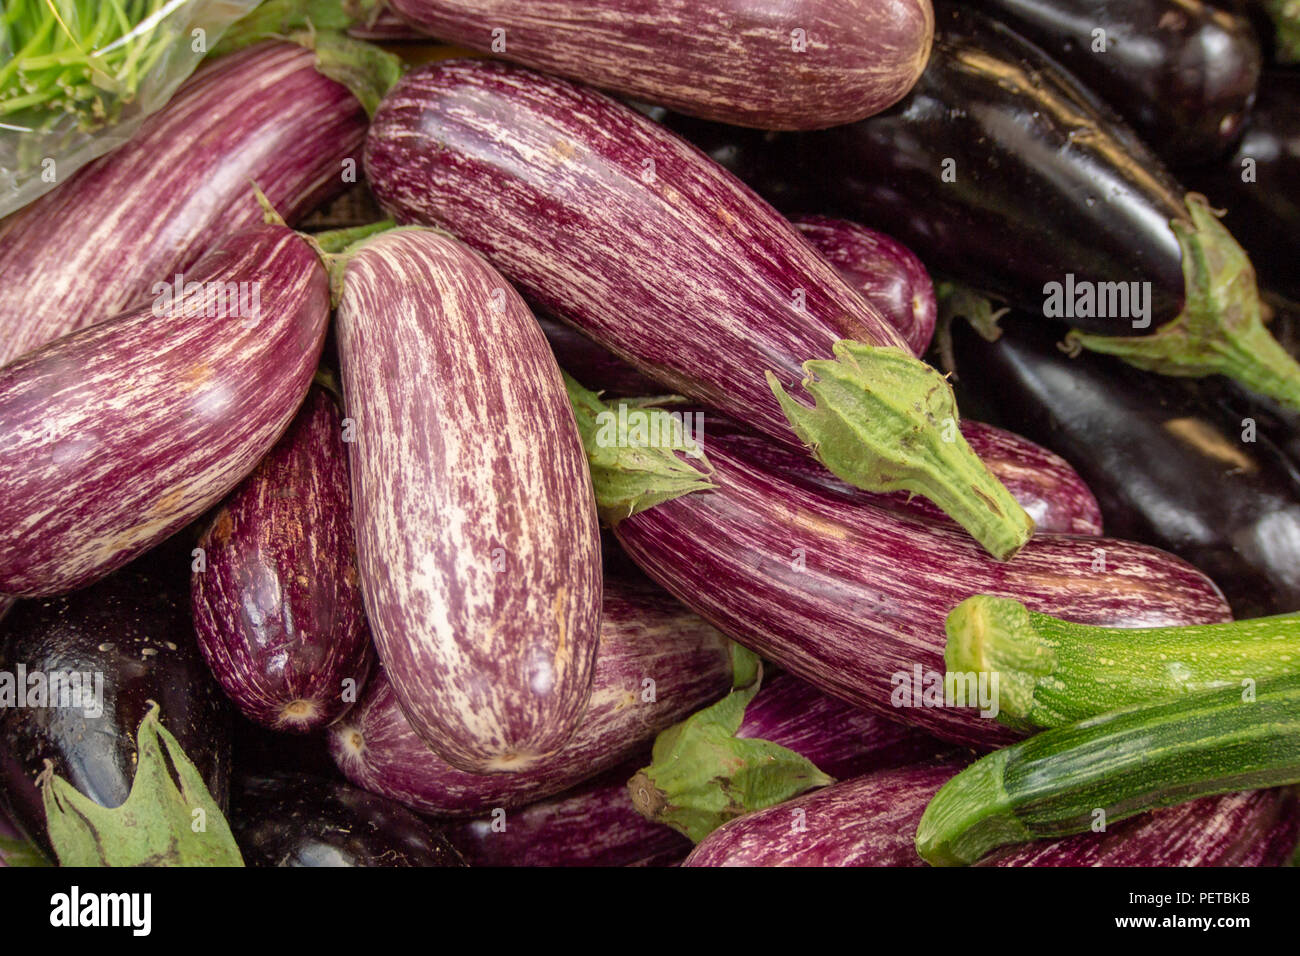 Fresh Aubergines on Sale in Borough Market, Southwark, London UK - Stock Image